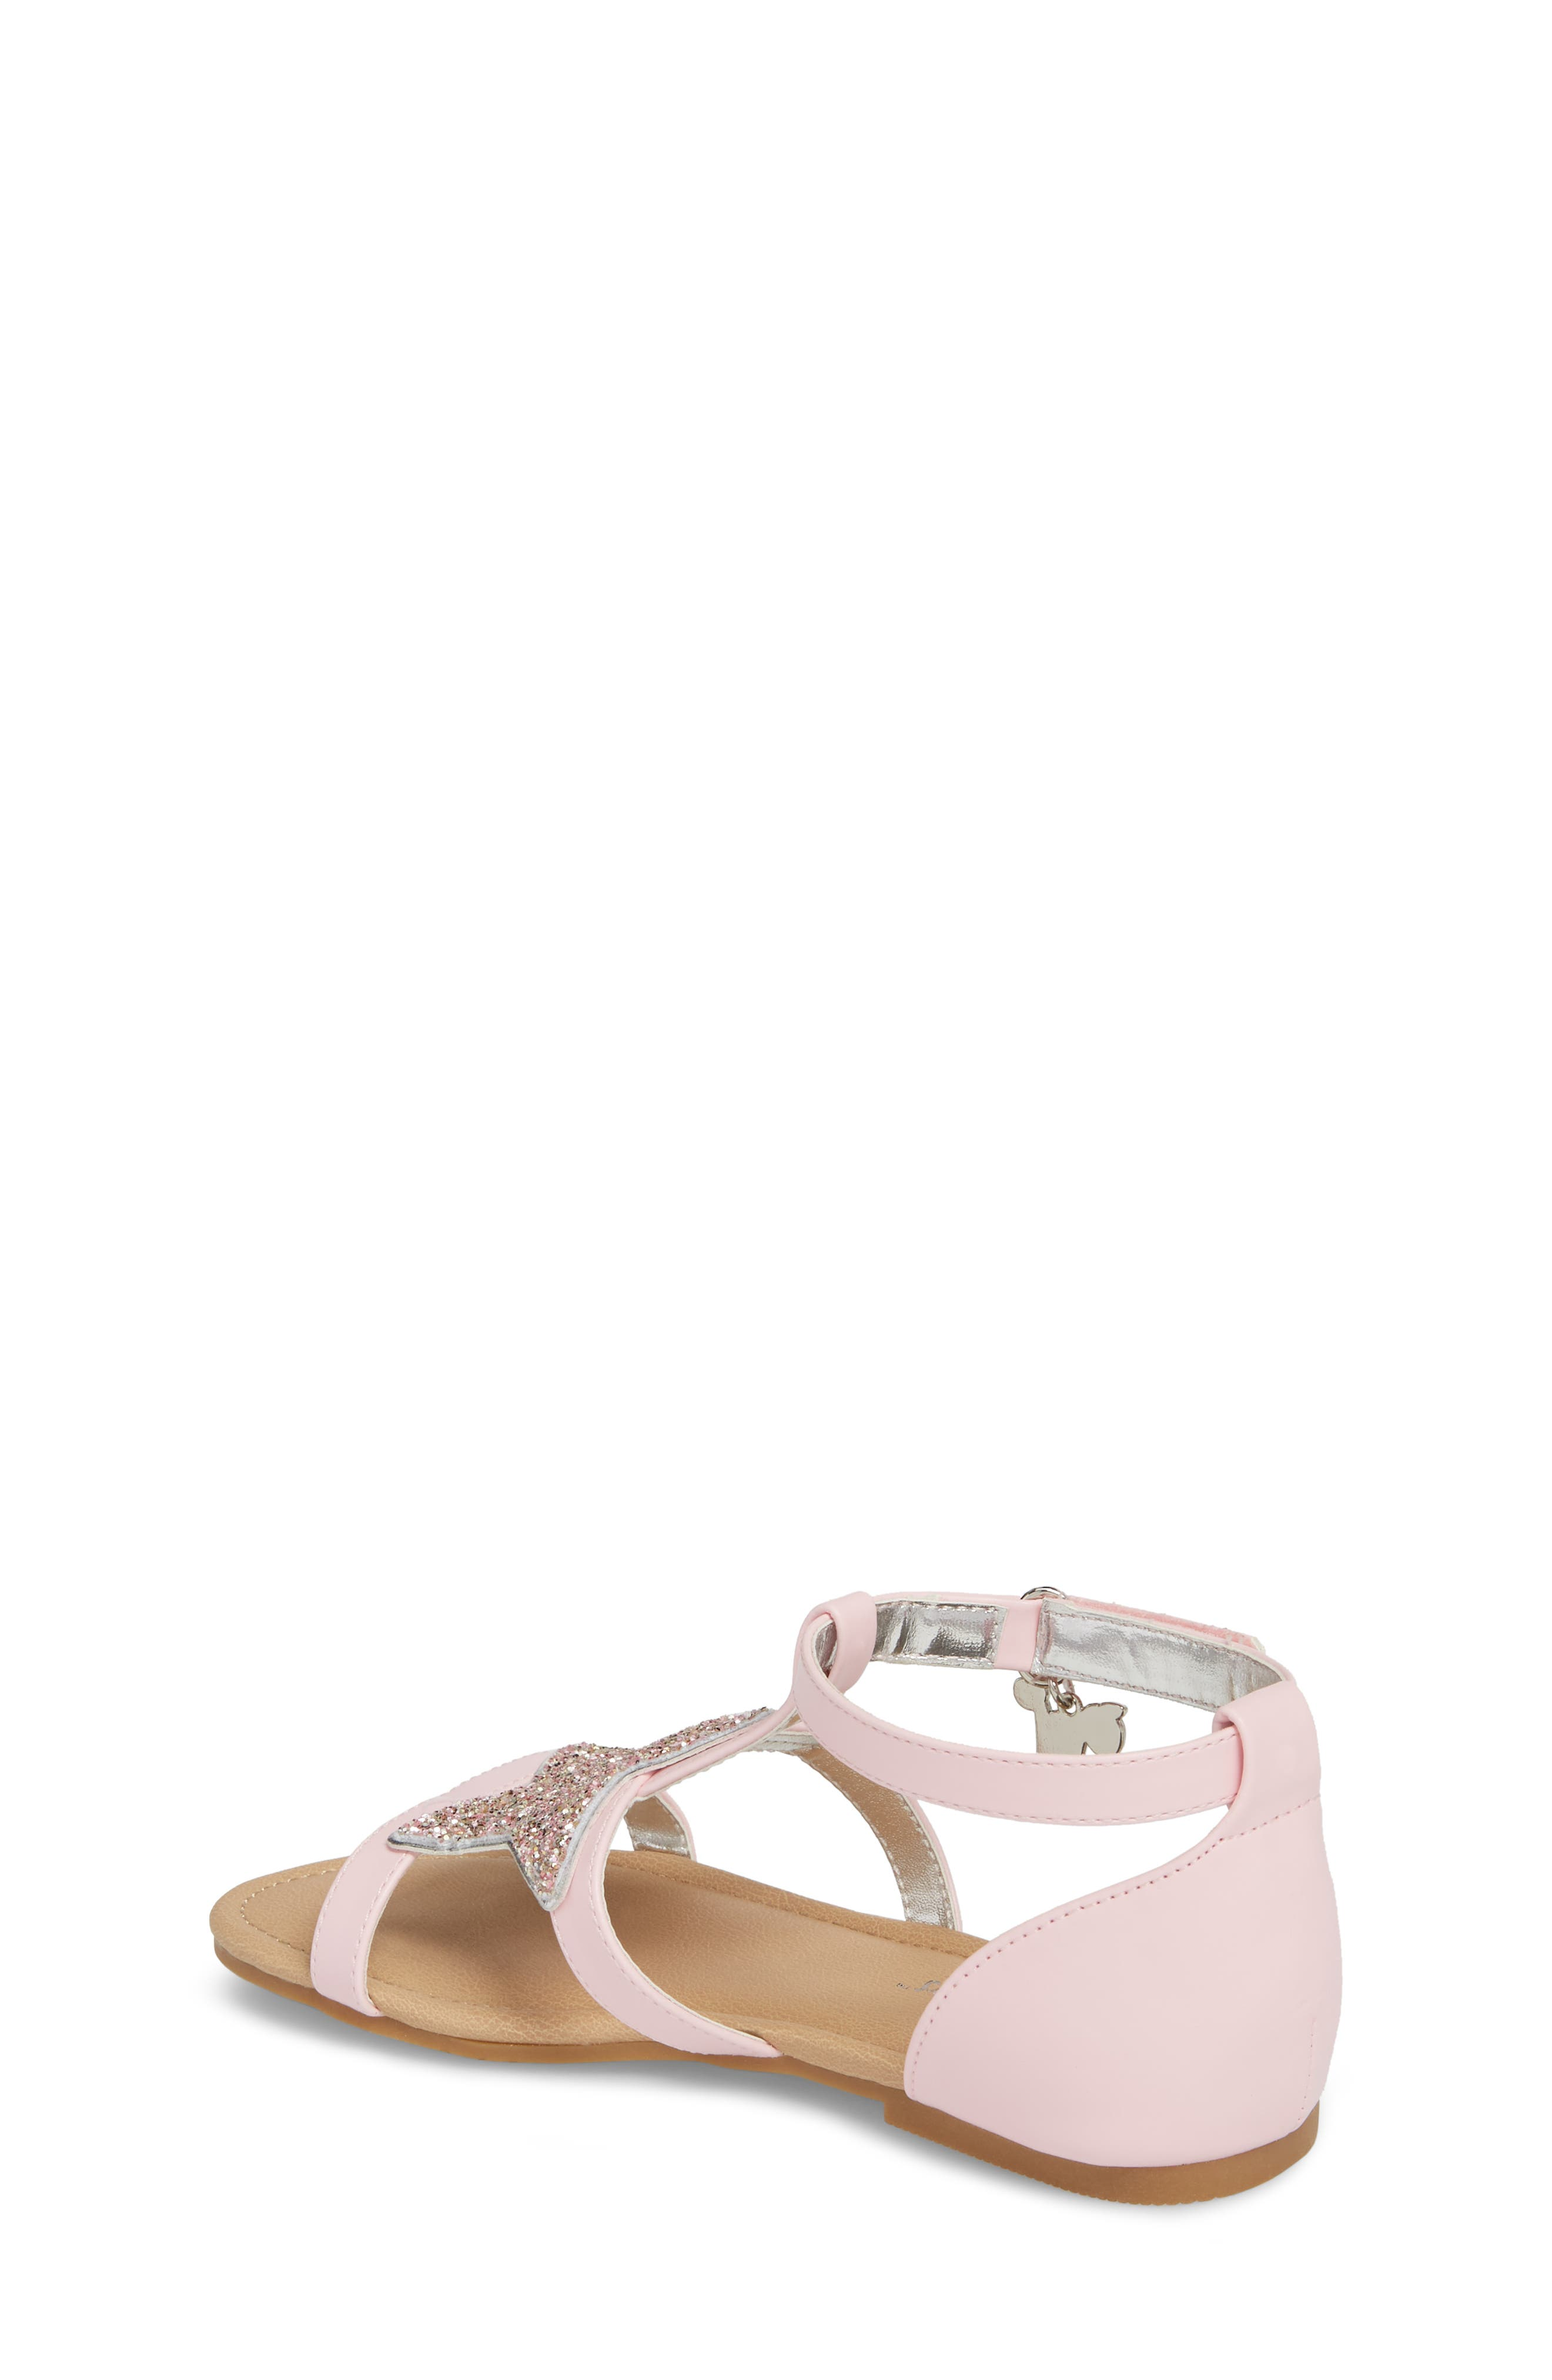 Emerson Glitter Star Sandal,                             Alternate thumbnail 2, color,                             697